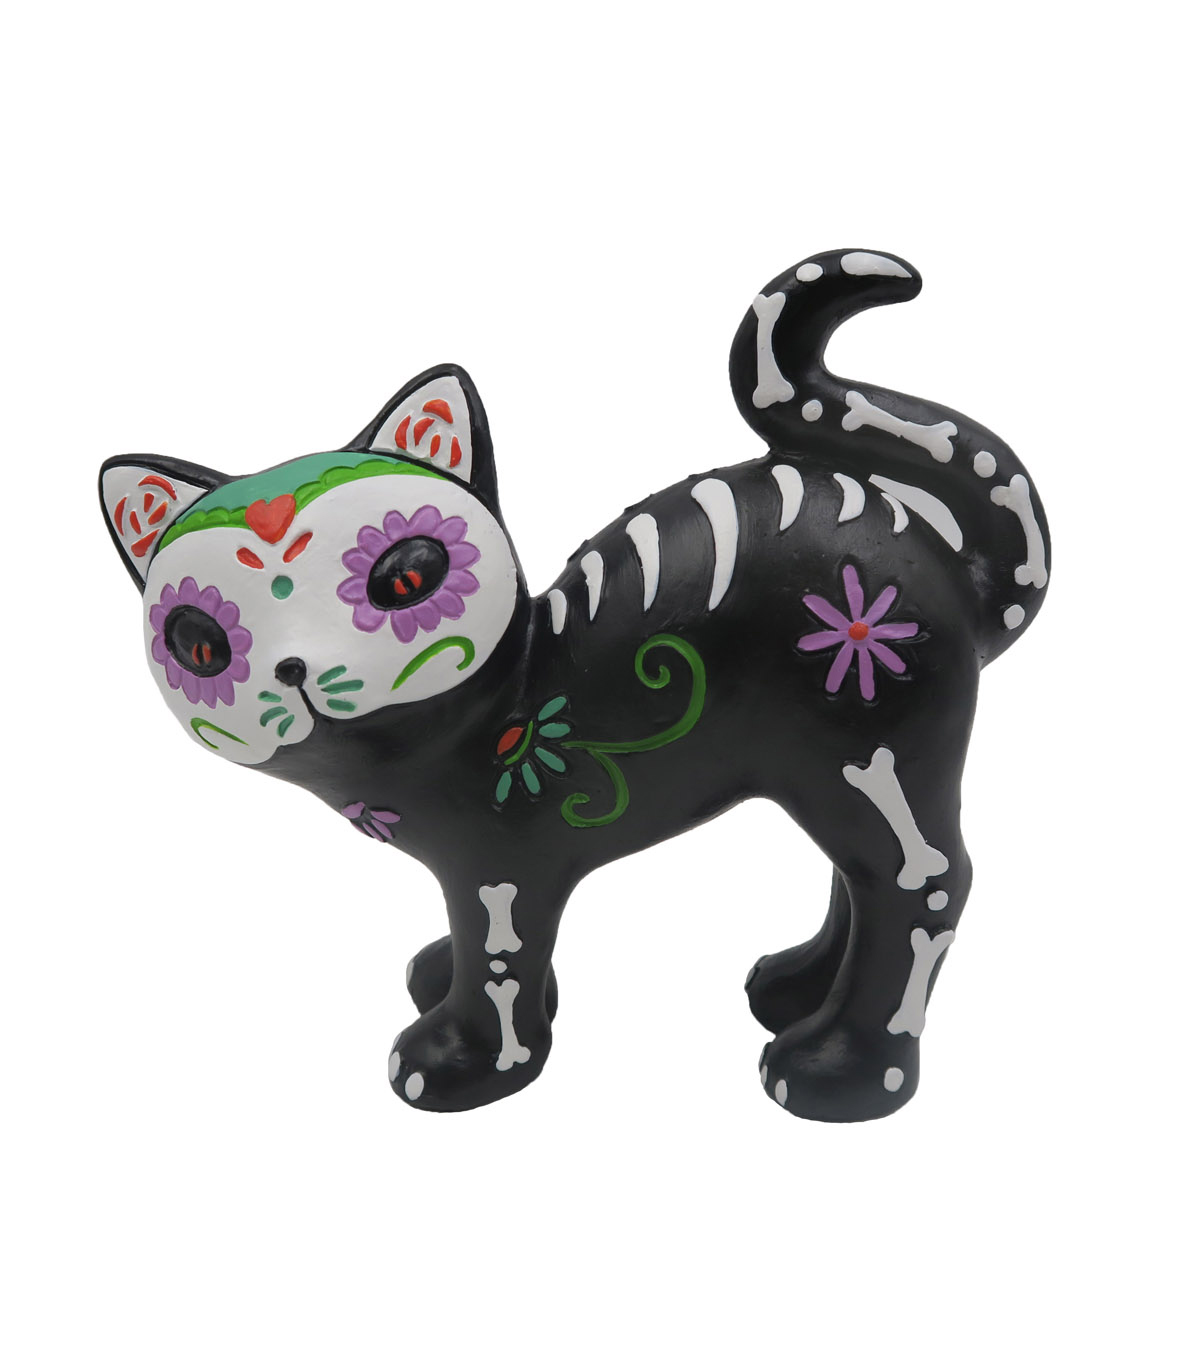 Maker\u0027s Halloween Resin Cat Critter-Day of the Dead